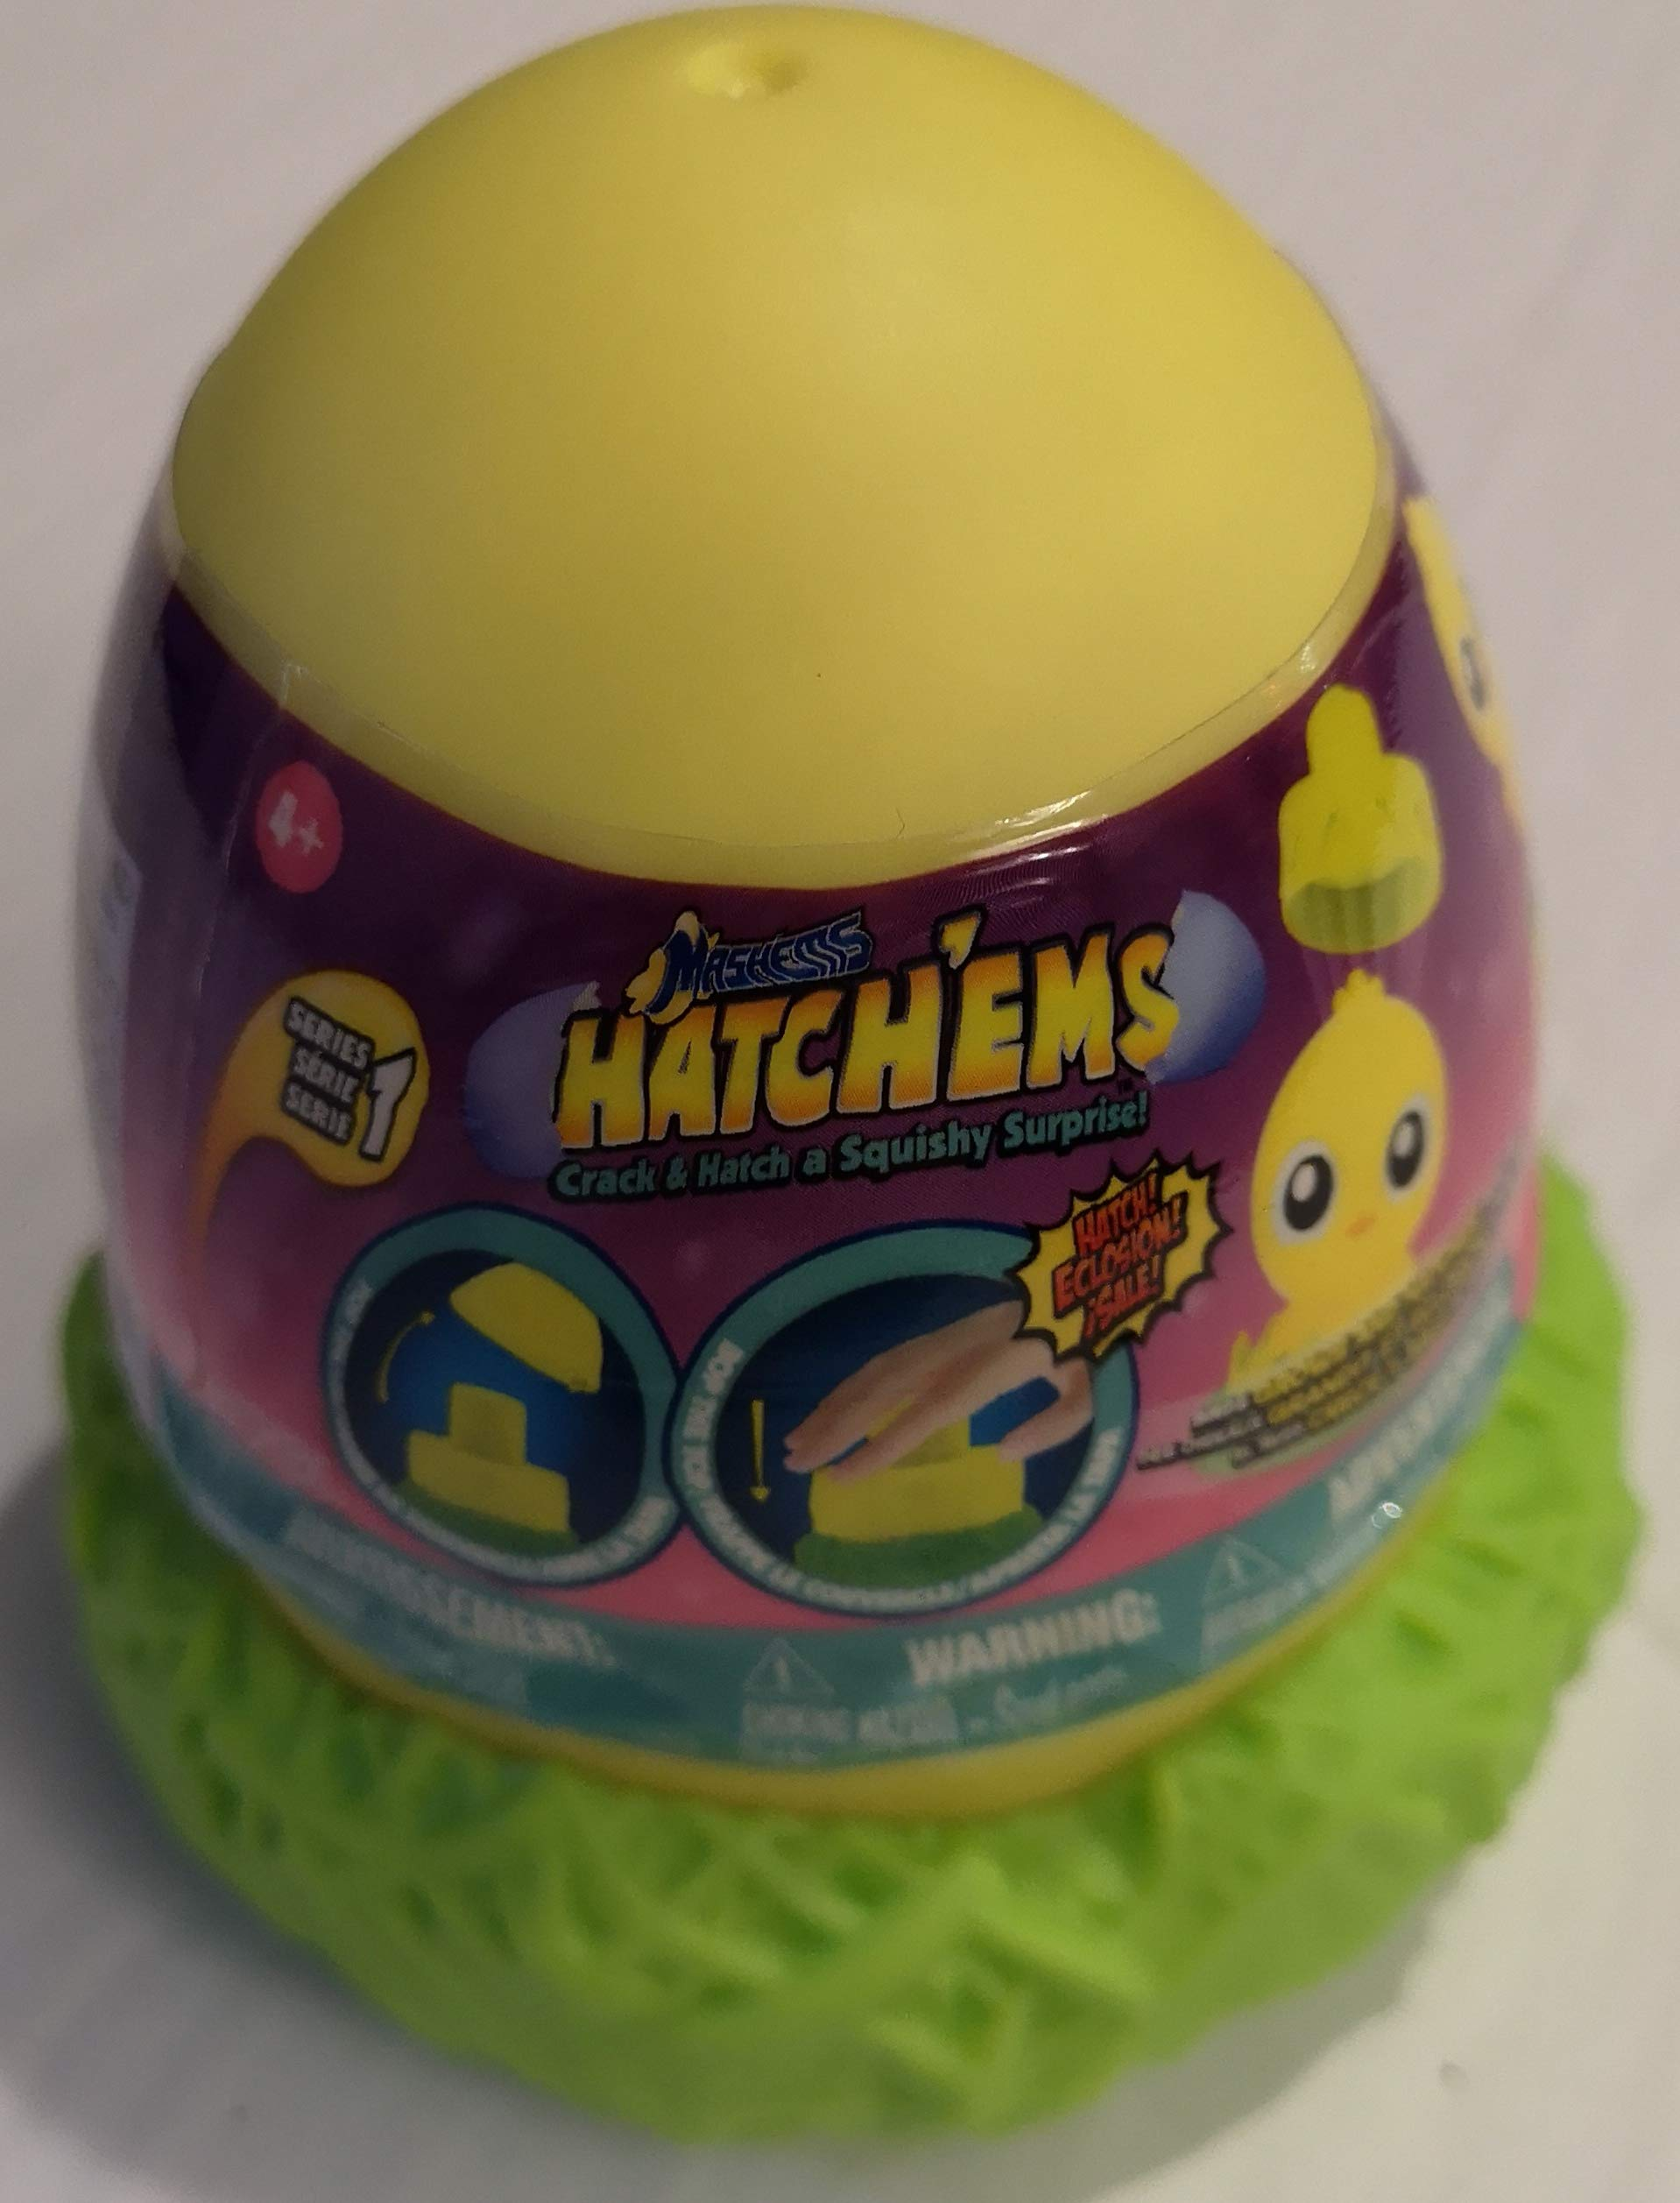 Mashems Hatchems Hatch'ems Mystery Pack (1Pack) (Chicks) by Mashems